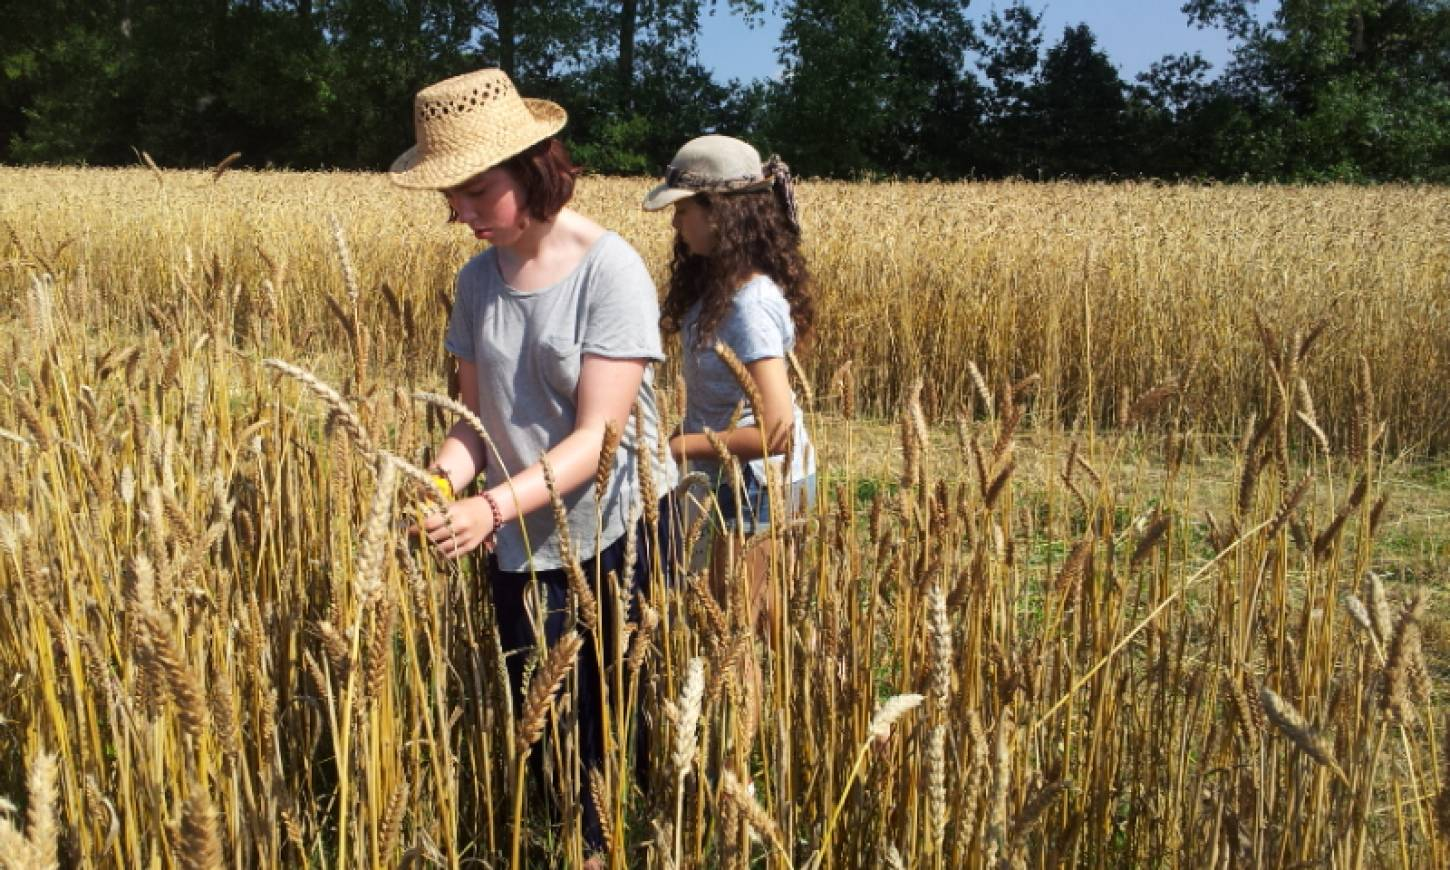 WoWo manual harvest pic: Ann Bodkin - 10:57am&nbsp;8<sup>th</sup>&nbsp;Aug.&nbsp;'15